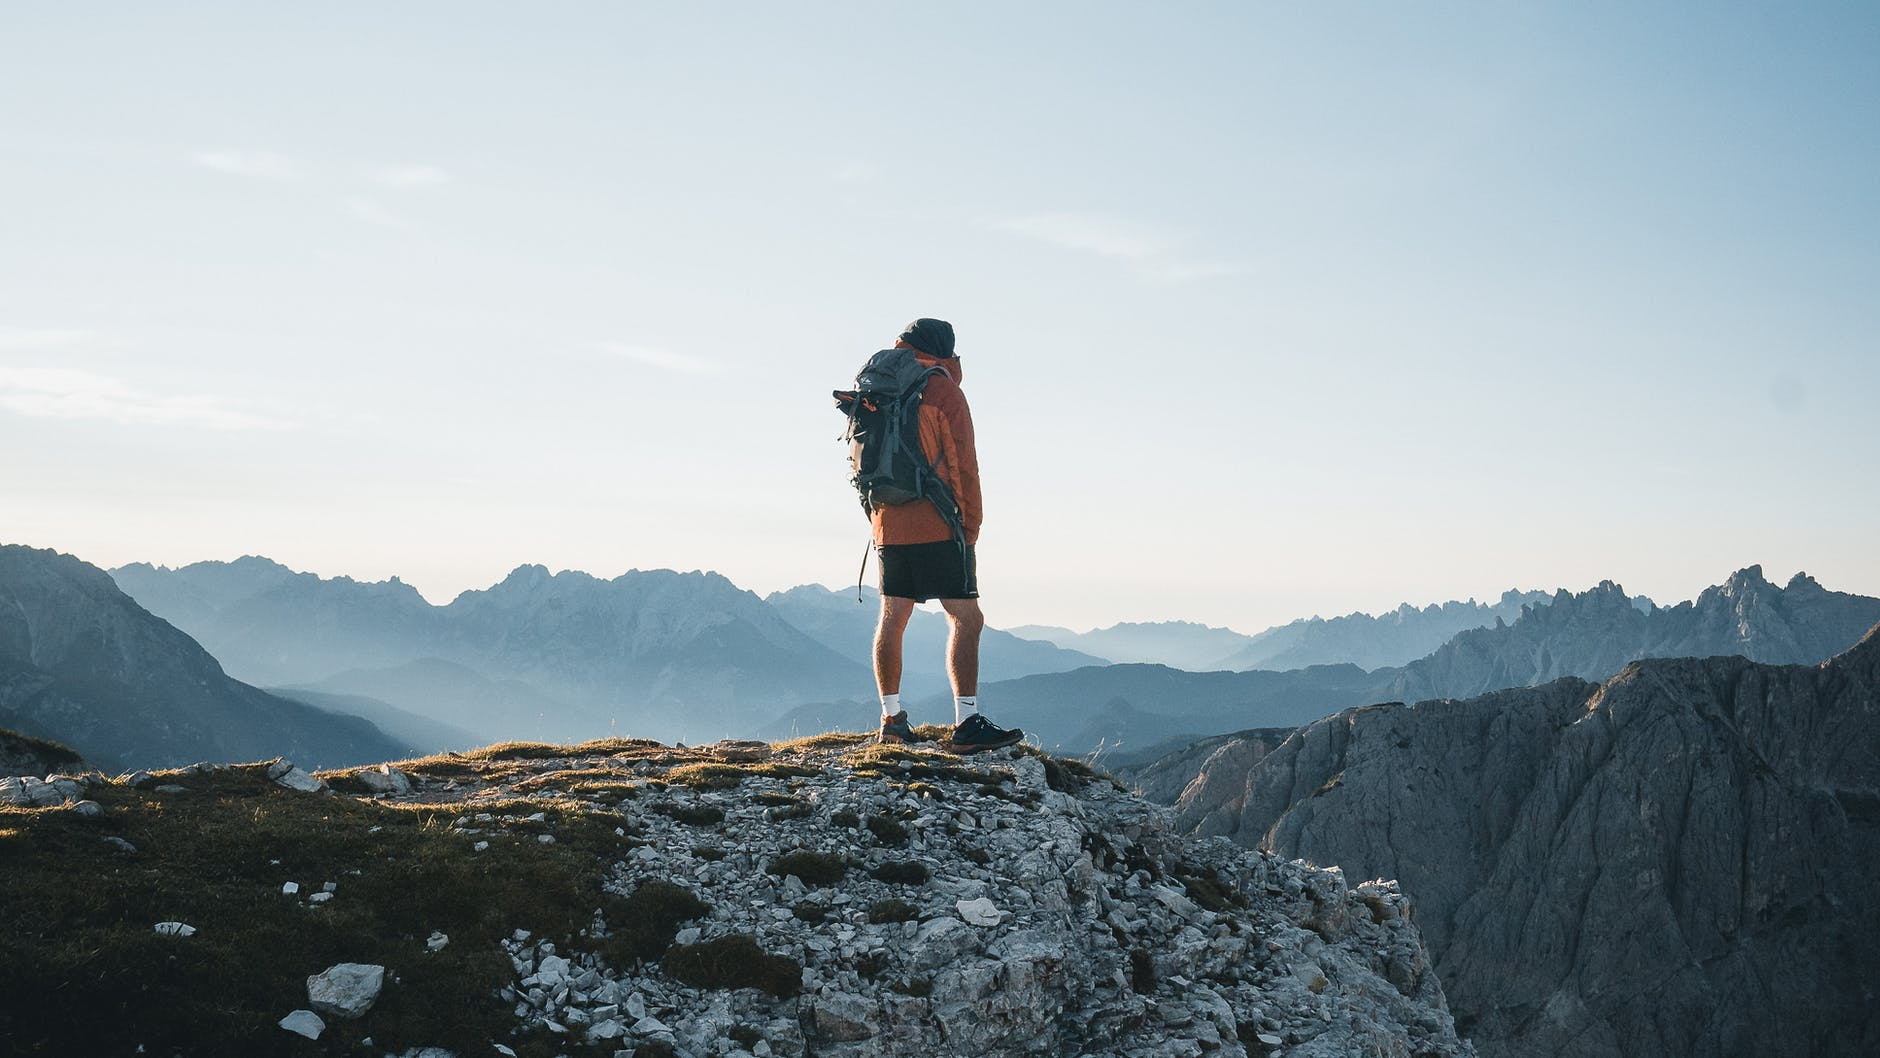 unrecognizable traveler standing on mountain top and admiring landscape